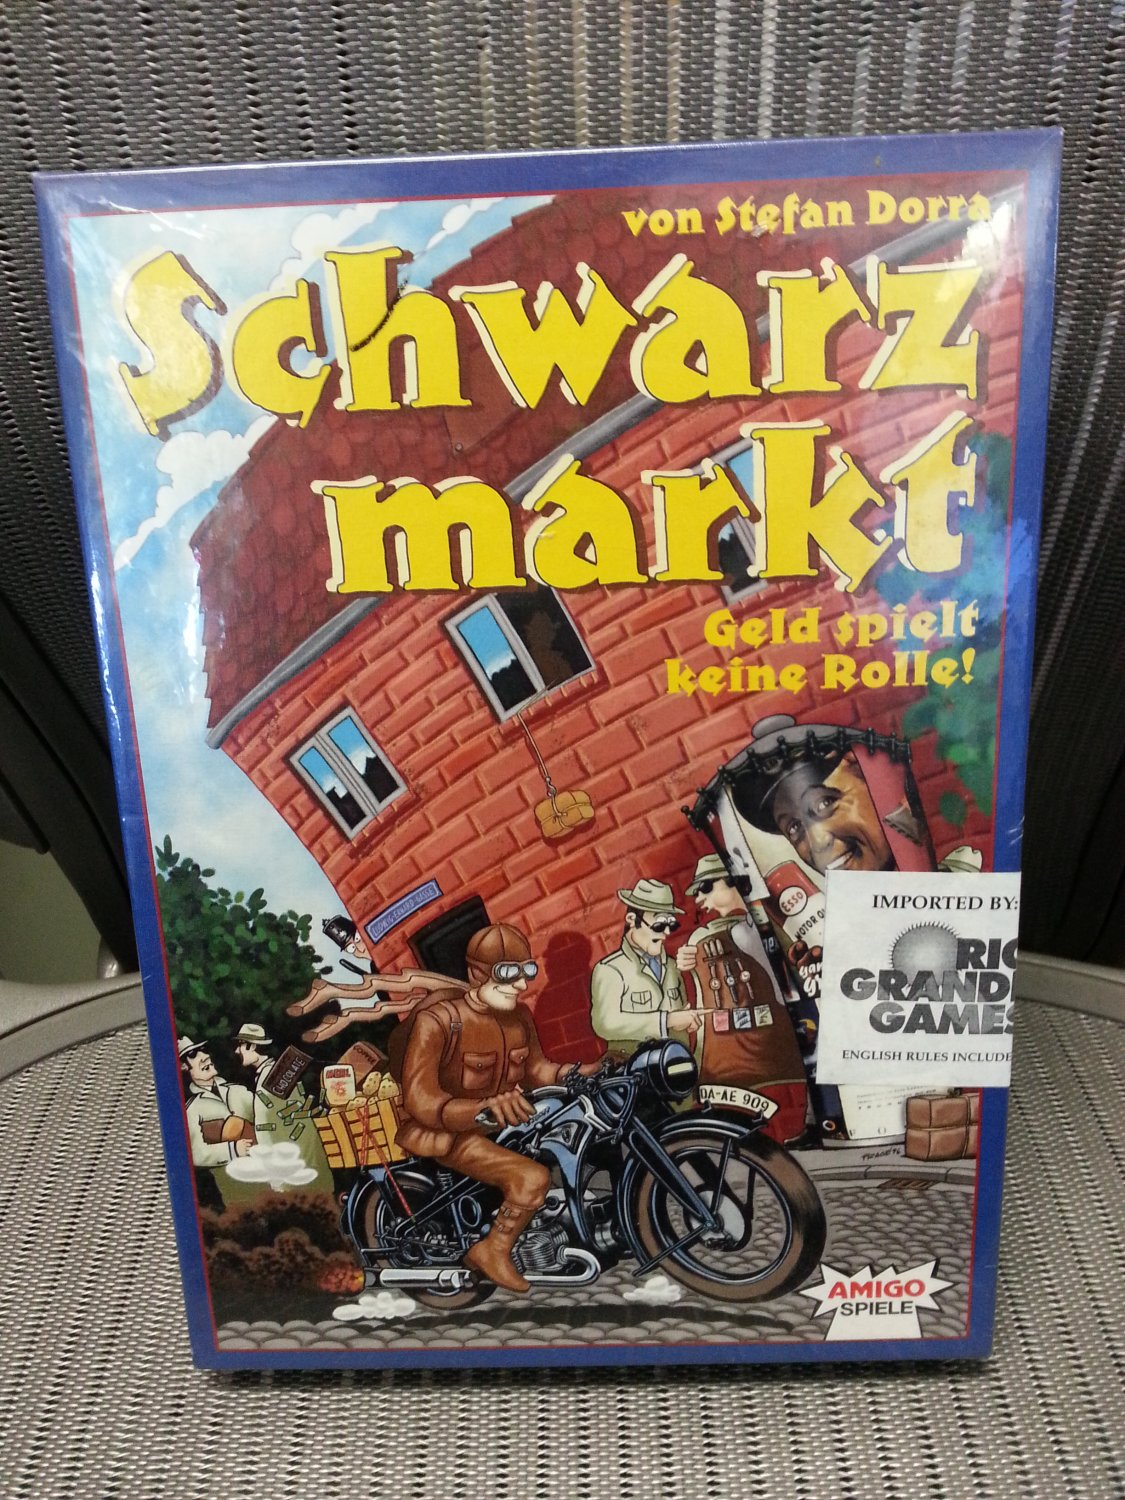 Schwarzmarkt Card Game by AMIGO from 1996 - Commodity Speculation - Imported by RIO GRANDE GAMES!